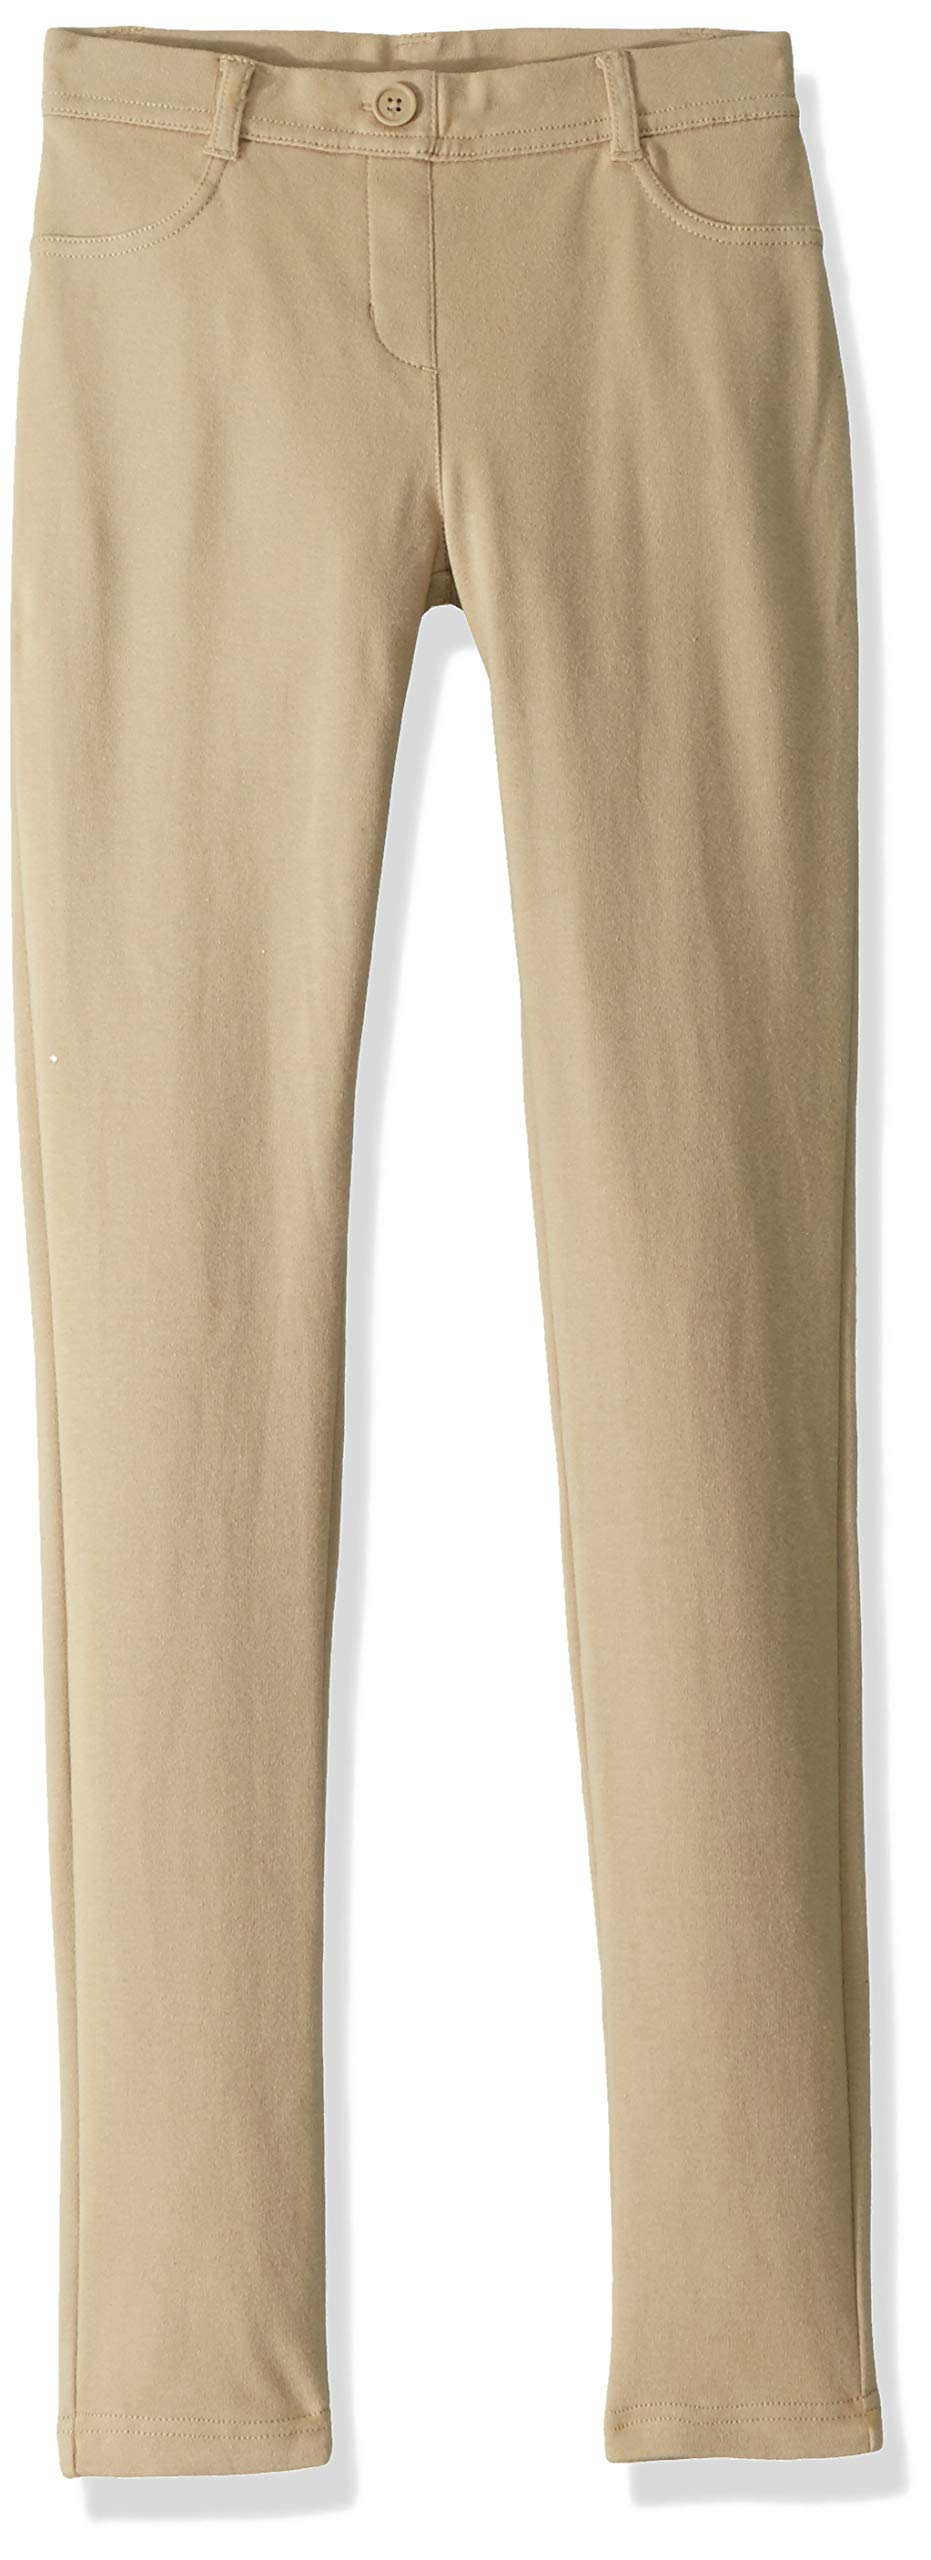 Nautica Junior's Uniform Stretch Jegging Pant